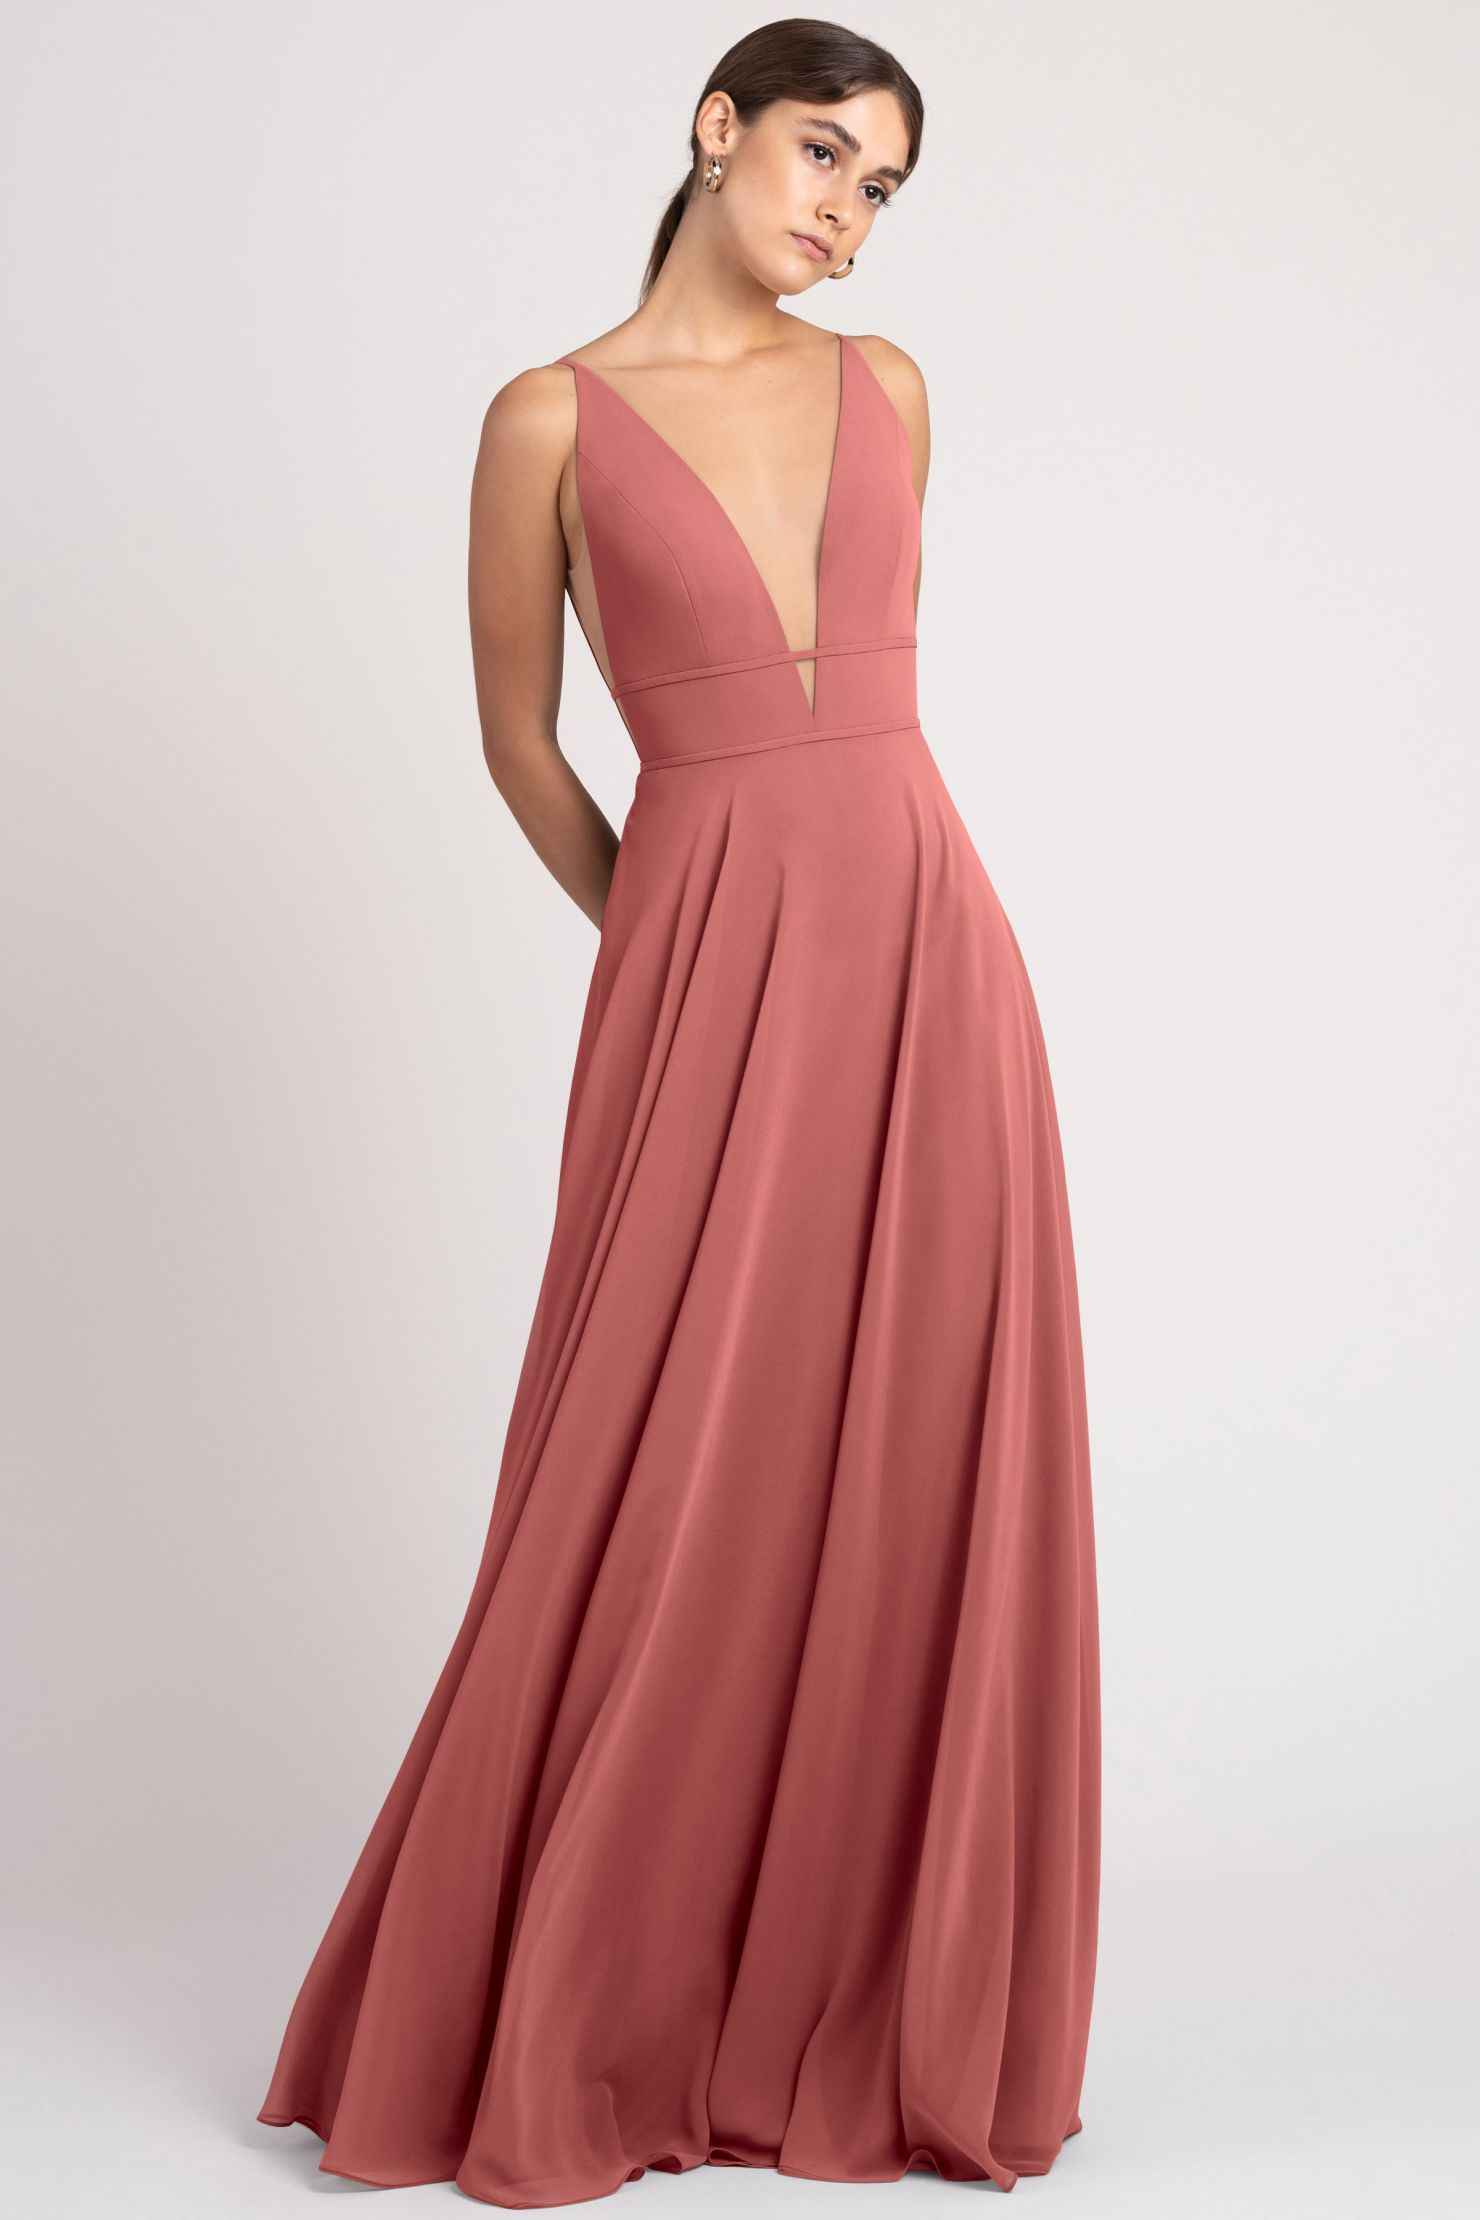 Hollis Bridesmaids Dress by Jenny Yoo - Dusty Rose